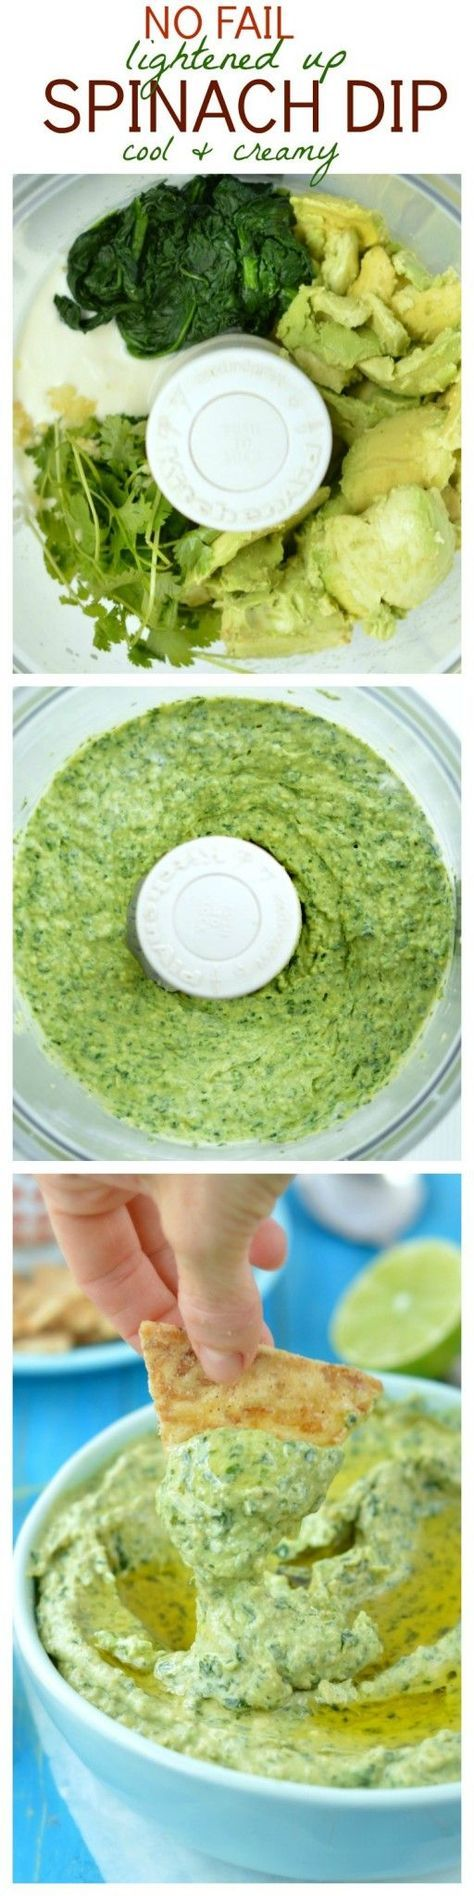 Easy clean eating dip recipe. This healthy spinach dip don't  need mayo, sour cream or any processed ingredients. After making this Creamy Spinach Dip recipe you'll never make another one! It is a dairy free dip, vegan dip and simply the best spinach dip ever!